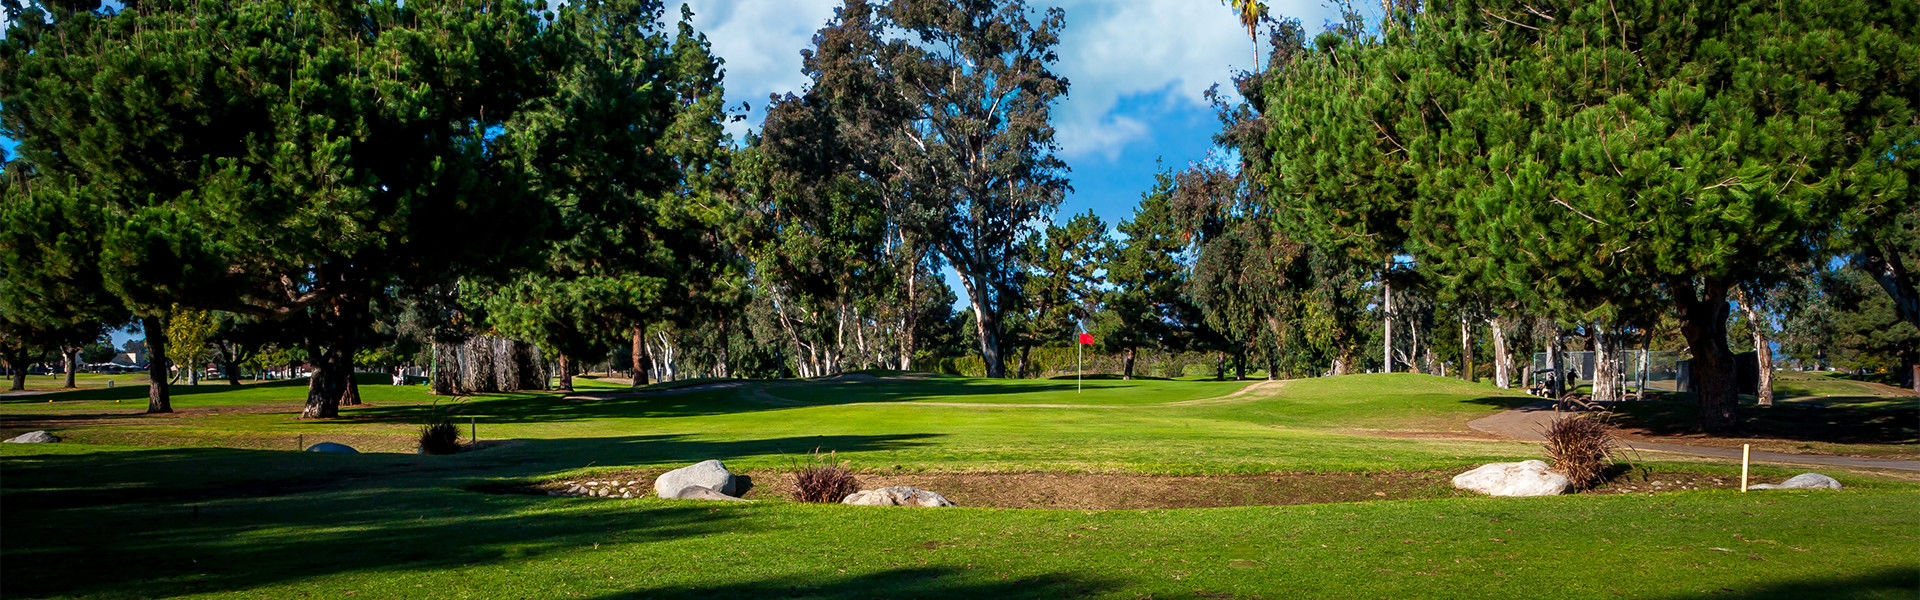 Alhambra golf course cover picture